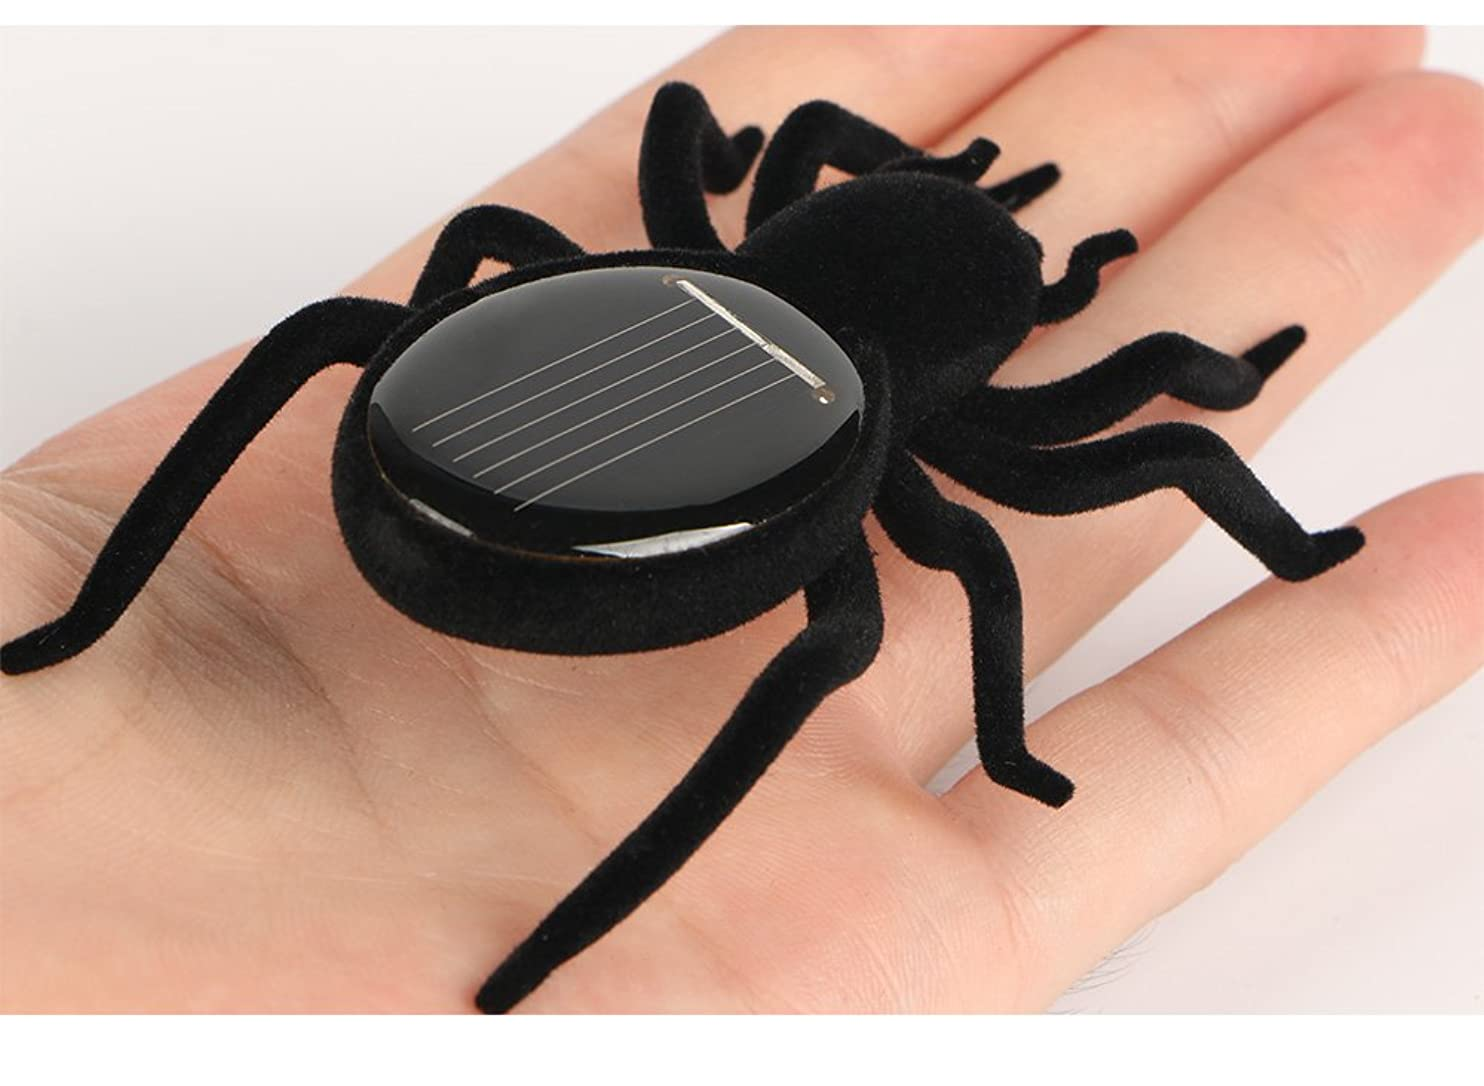 Qinmay Solar Powered Automatic Solar Spider Tarantula Educational Robot Scary Insect Gadget Trick Solar Kids Robot Toy tnwndcvnusg04